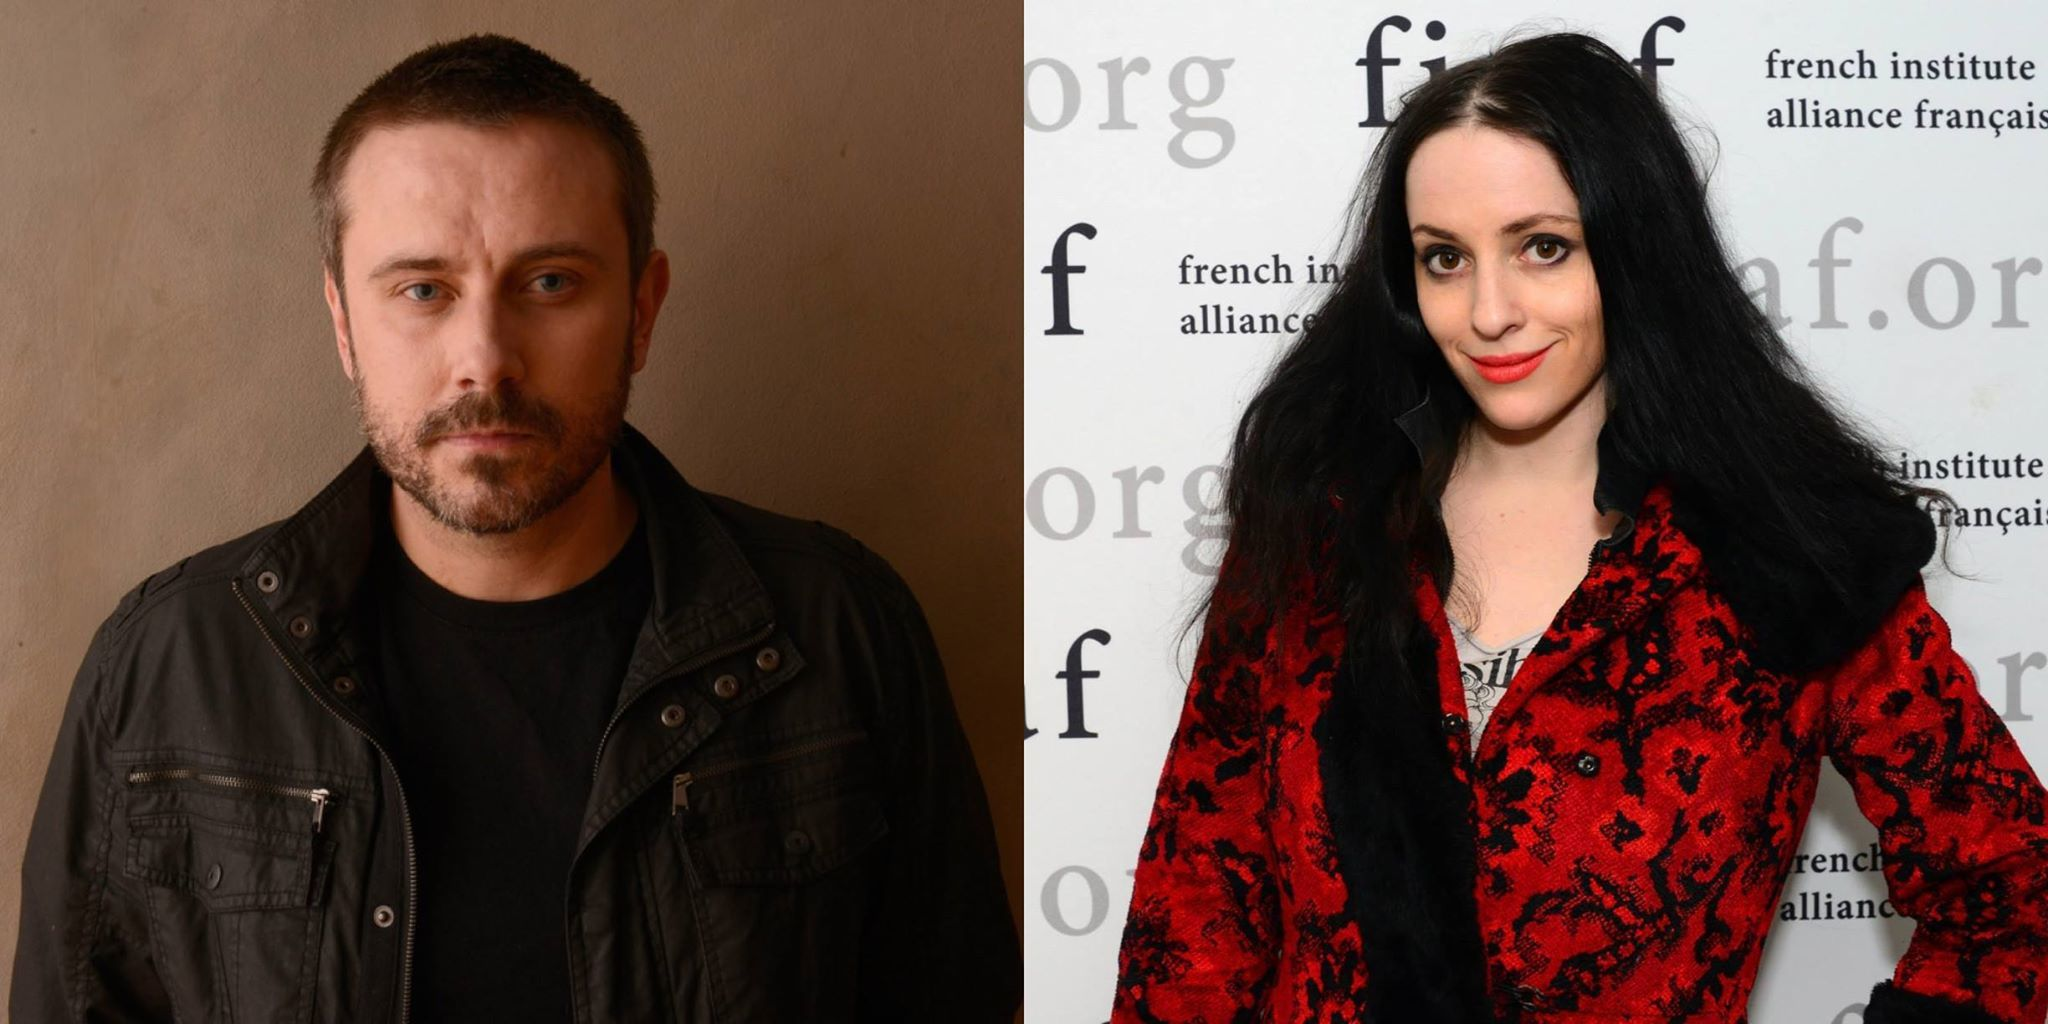 Jeremy Scahill in Conversation with Molly Crabapple Saturday, May 9